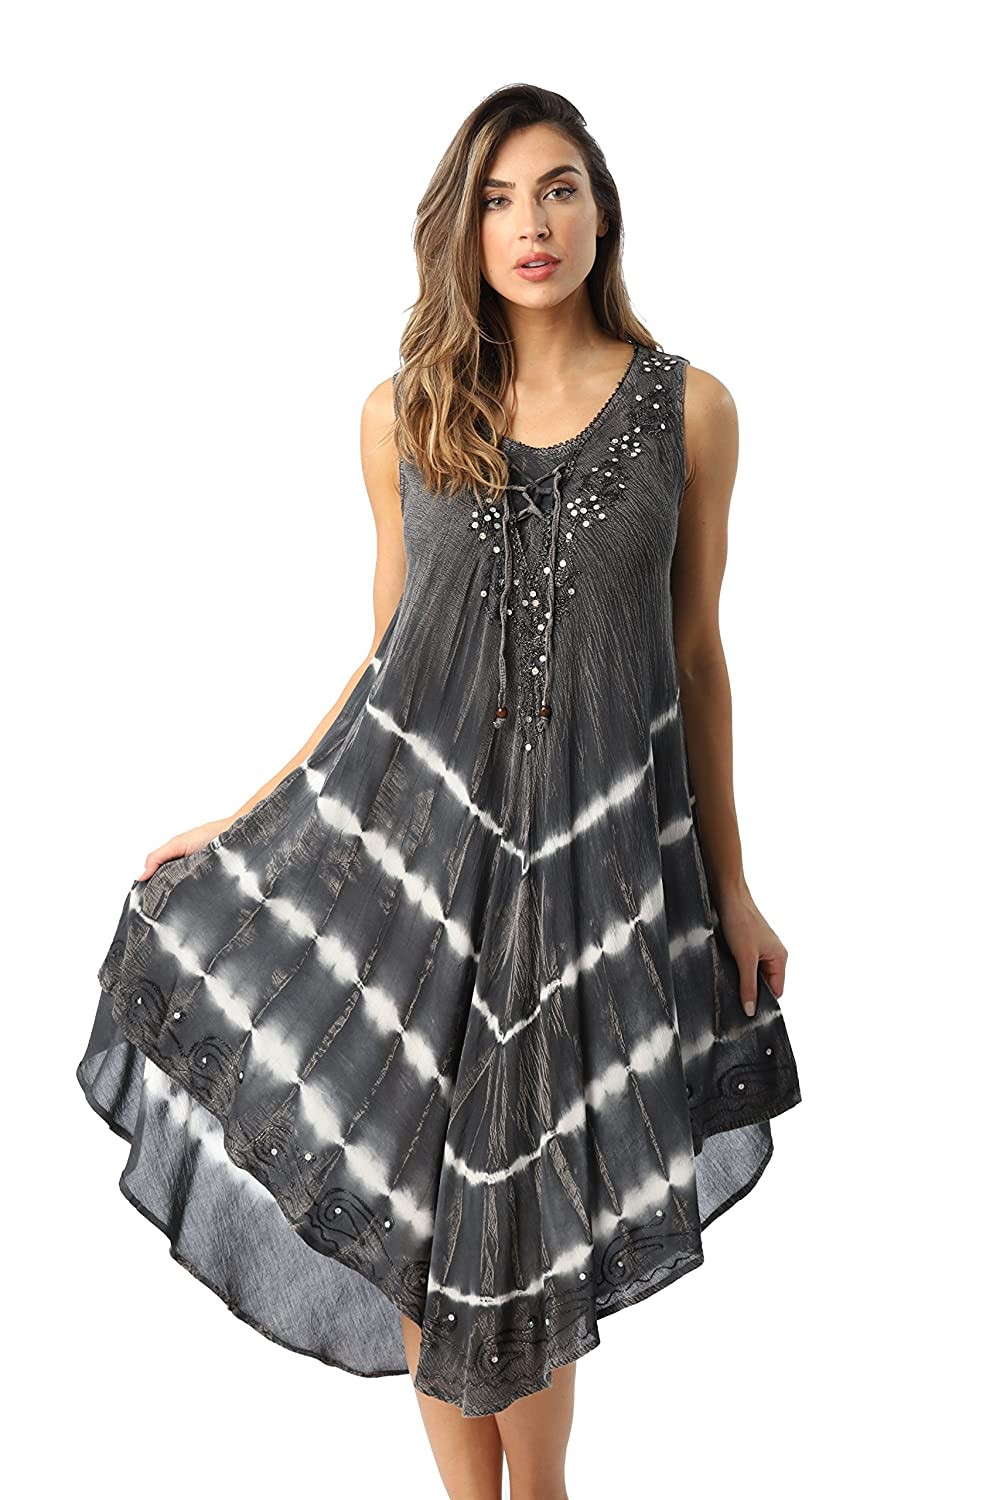 68f2d9911db9e ENJOY STYLISH VERSATILITY: Whether you're hitting up the beach or heading  to a casual lunch, these spring and summer dresses can easily be  accessorized to ...